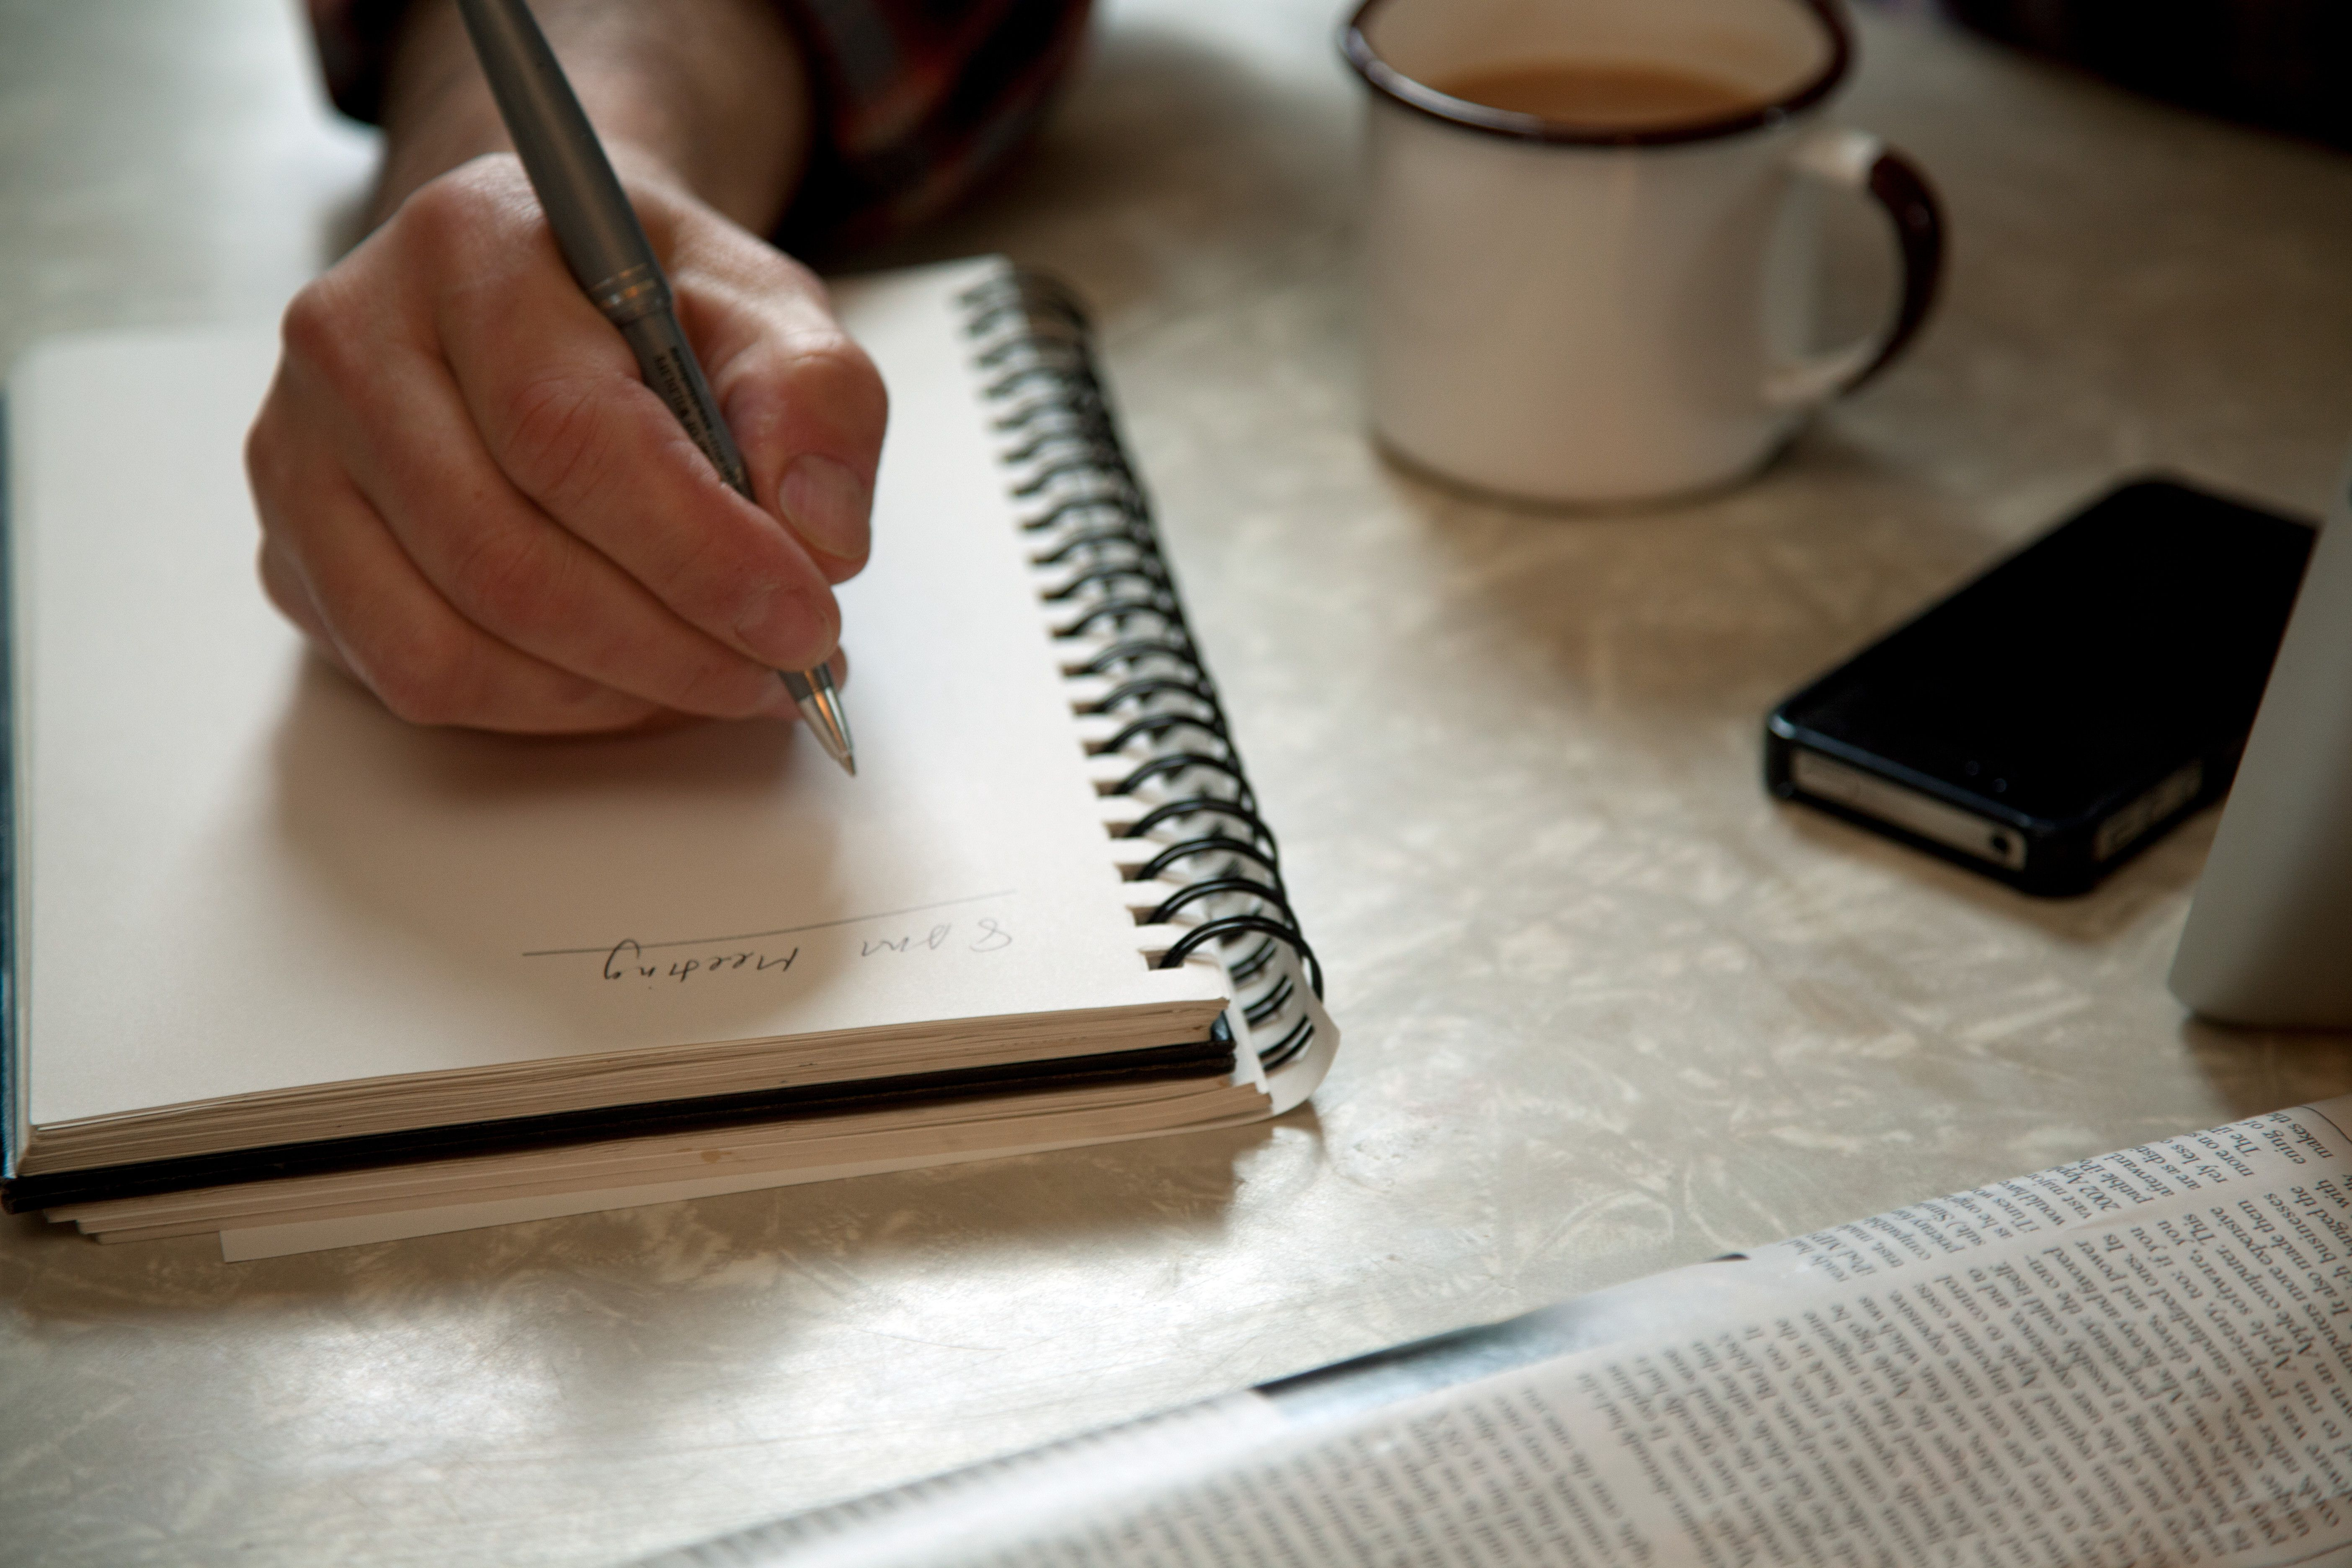 Try writing your notes by hand